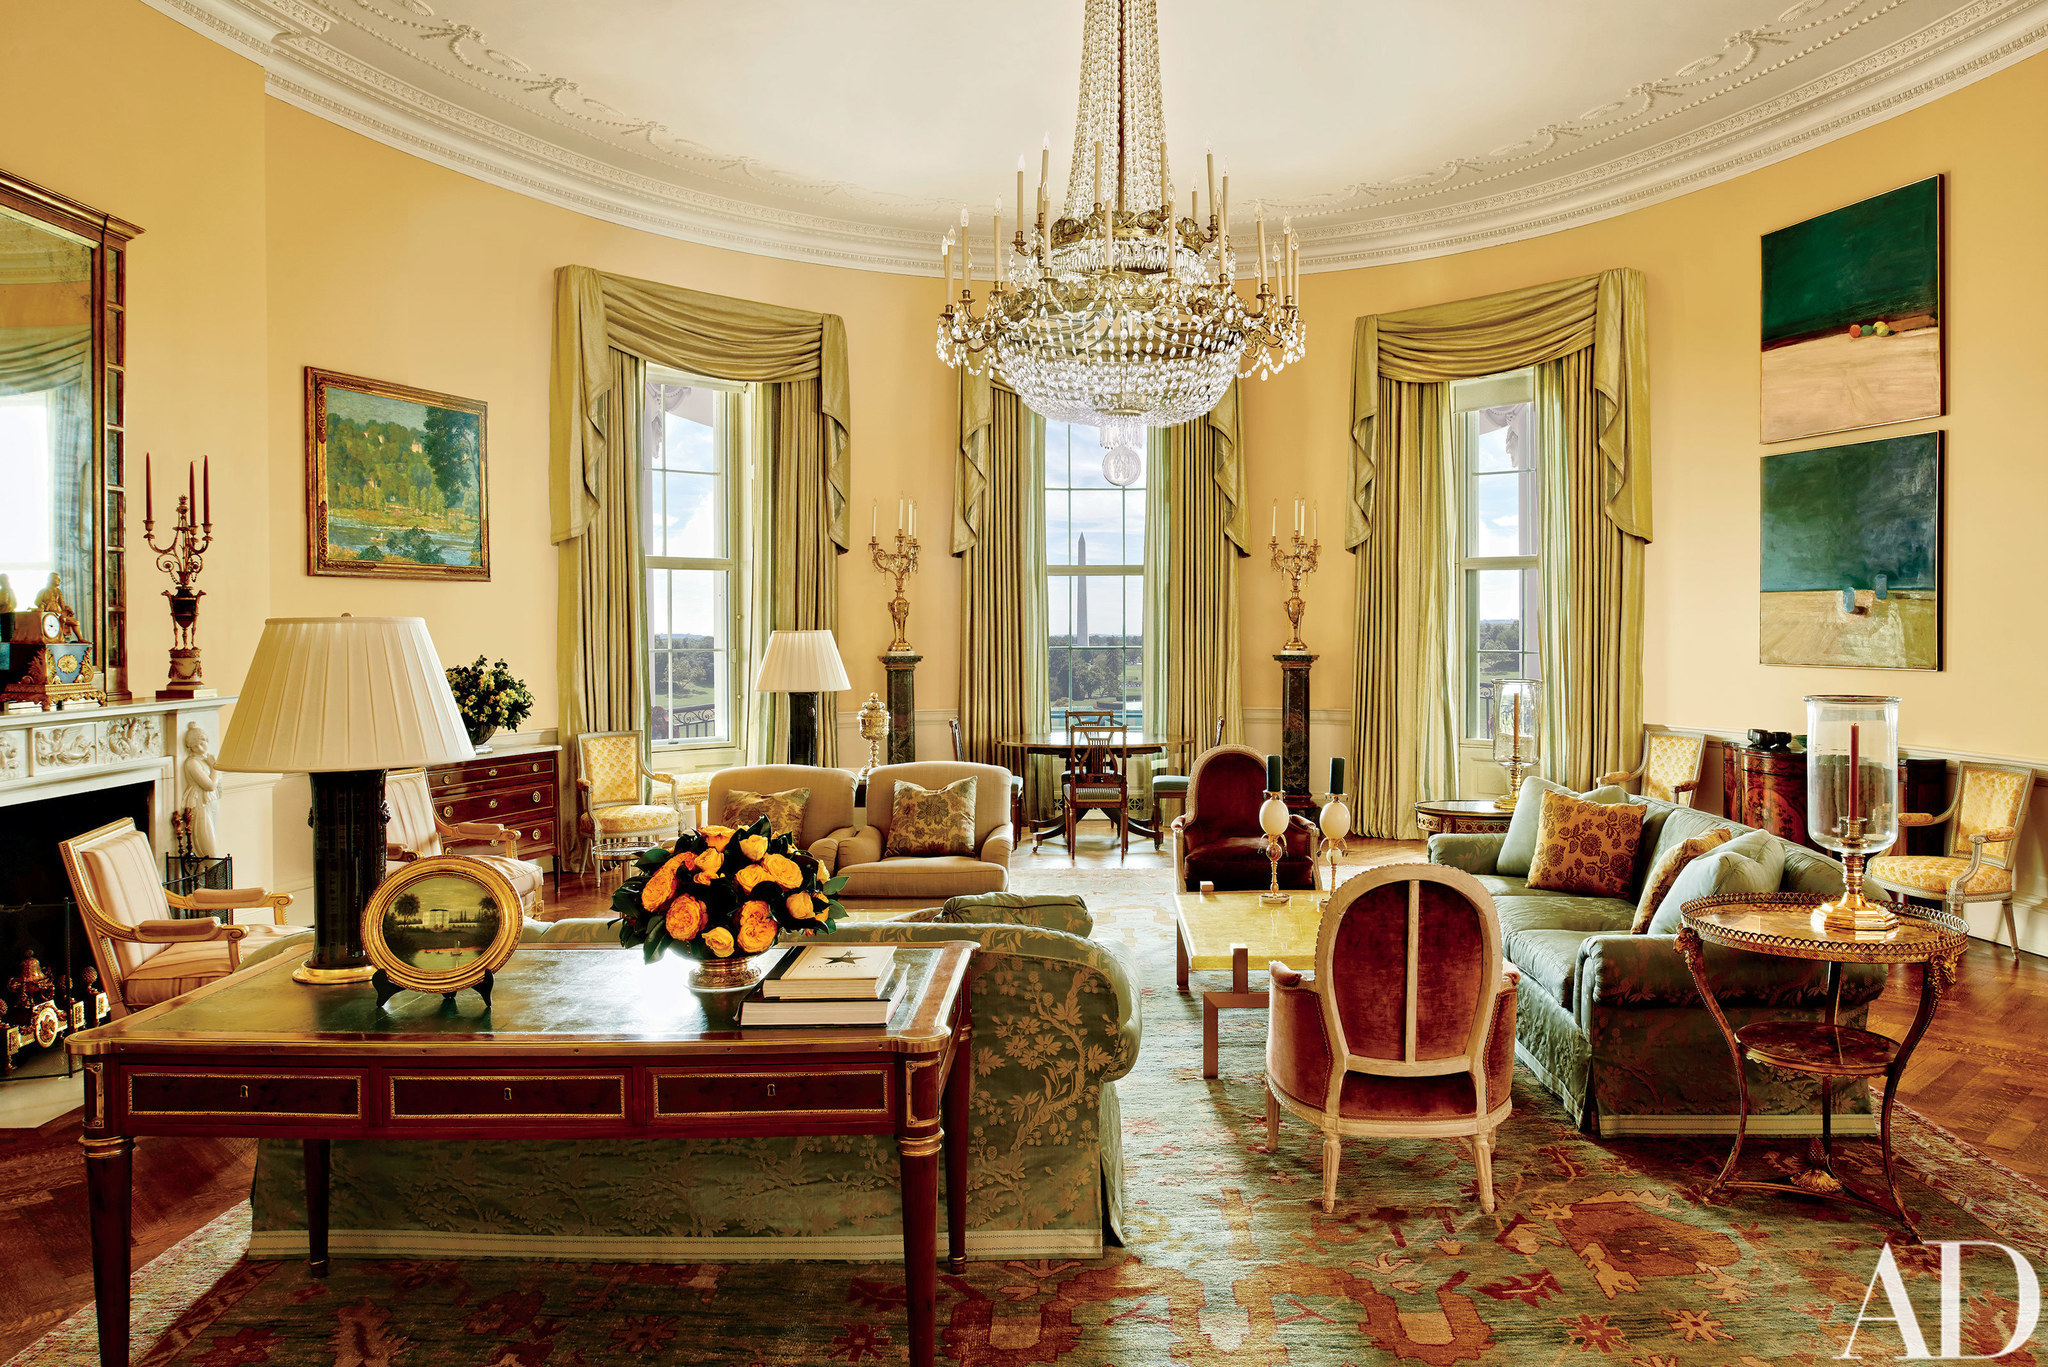 The first peek inside the Obamas' private White House: Stylish, but ...